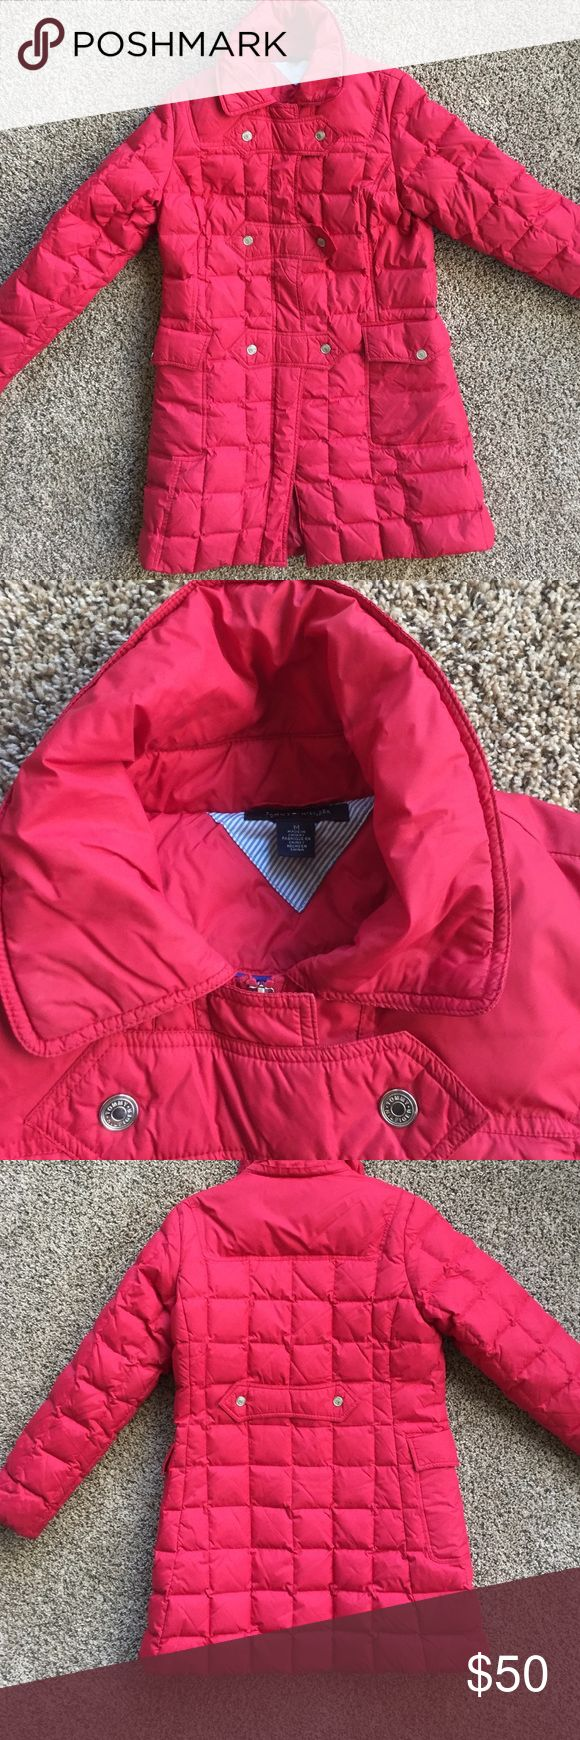 Tommy Hilfiger Down Jacket Excellent condition. Tommy Hilfiger Jackets & Coats Puffers